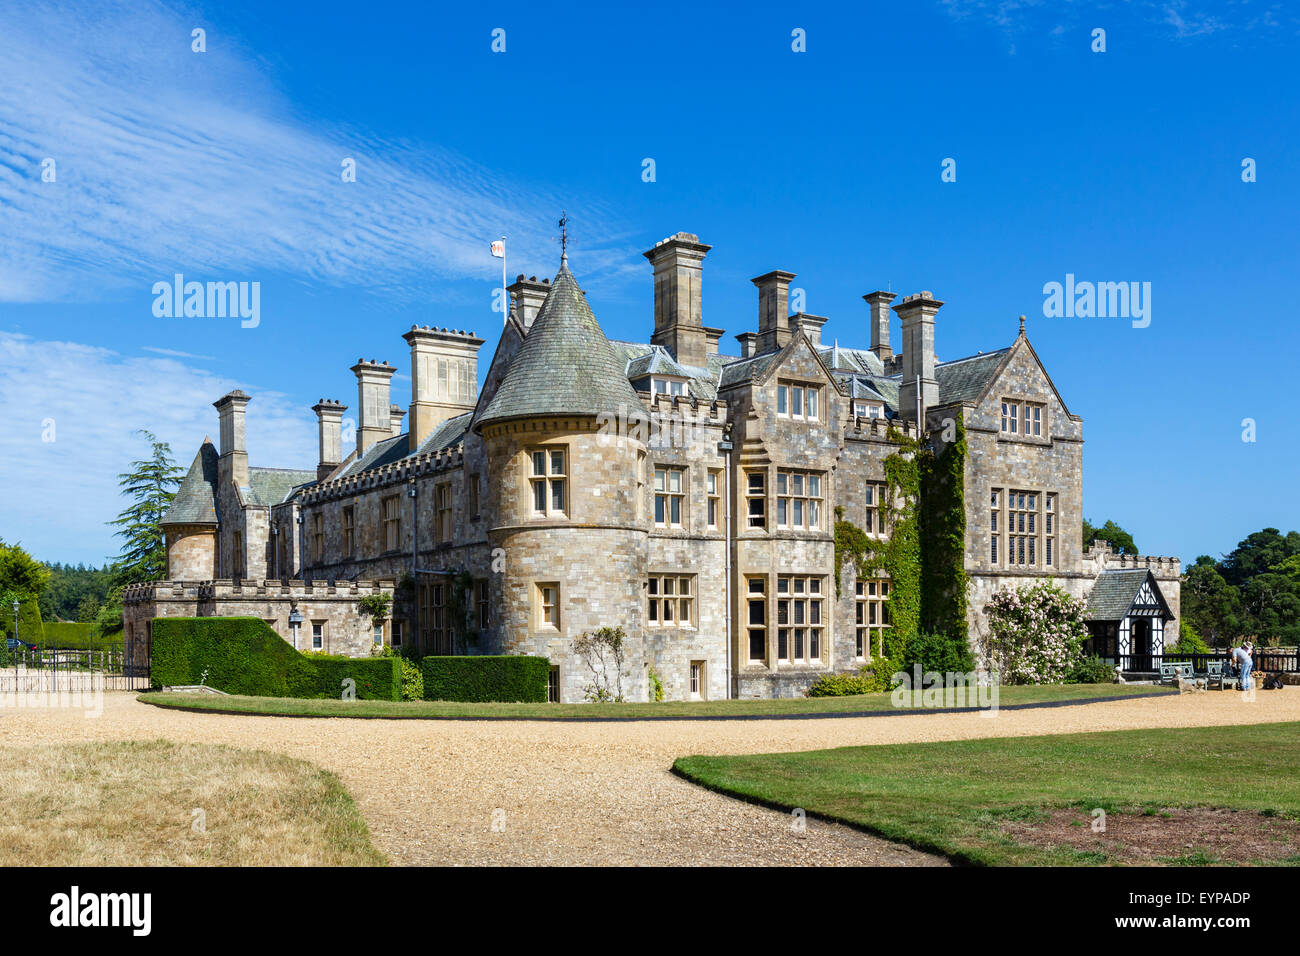 Beaulieu Palace House, home of the Barons Montagu, Beaulieu, Hampshire, England UK - Stock Image